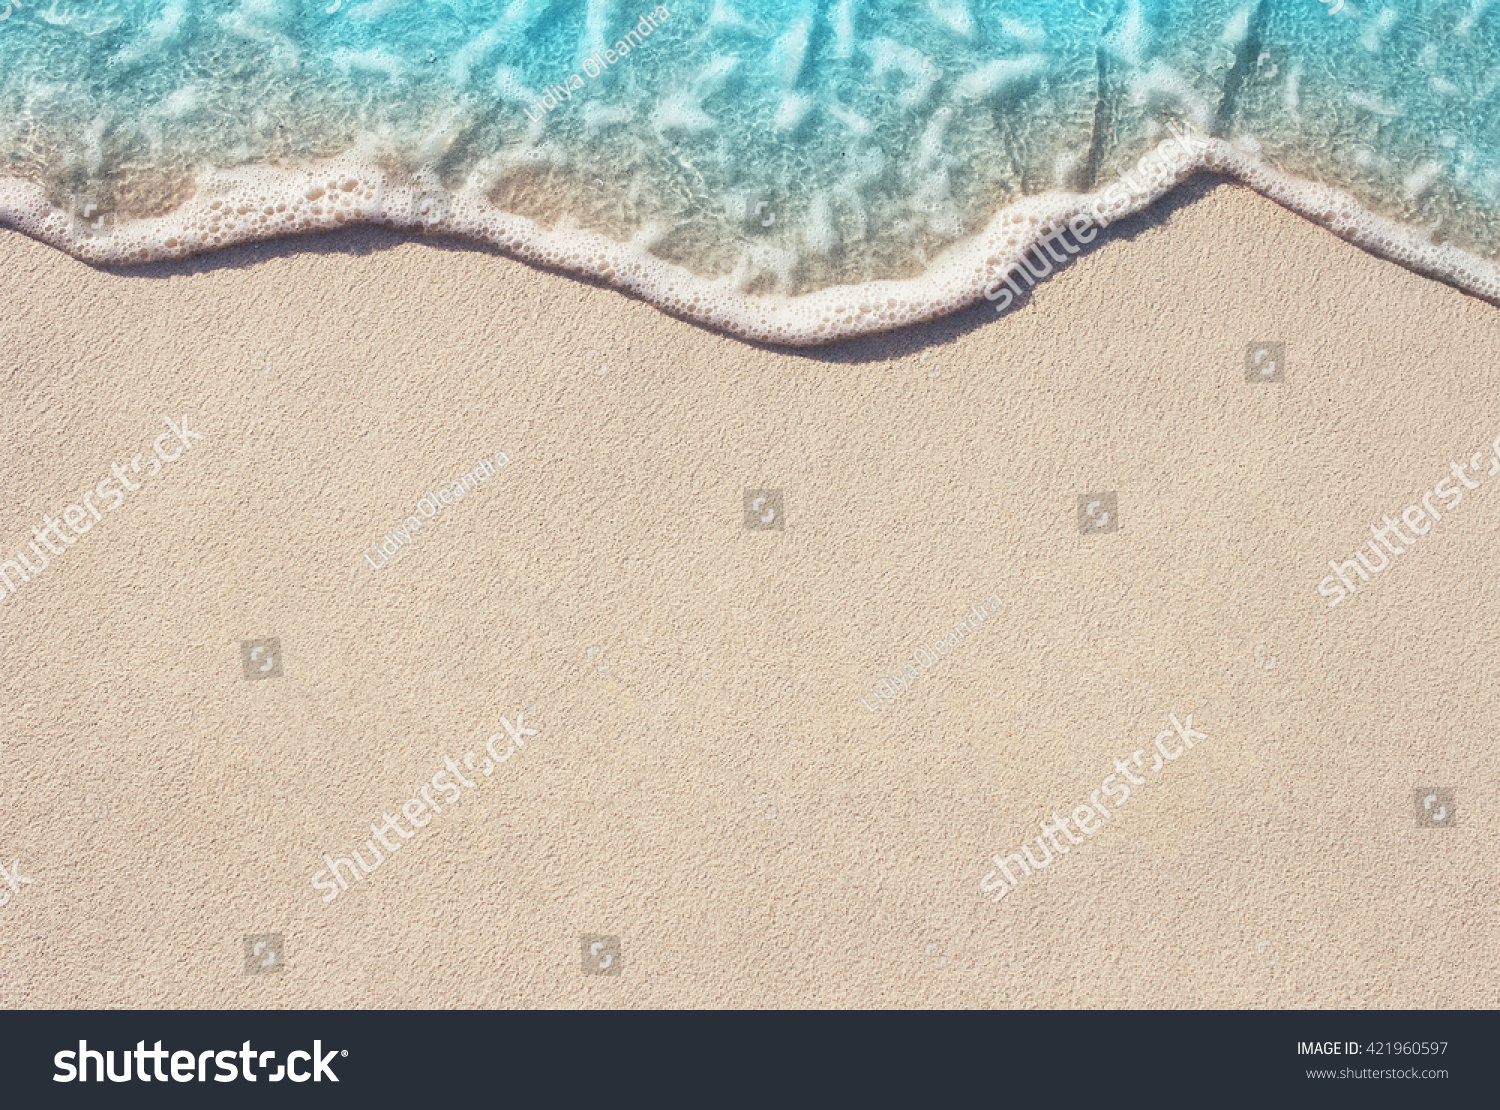 Soft Wave Of Blue Ocean On Sandy Beach. Background. Selective focus.